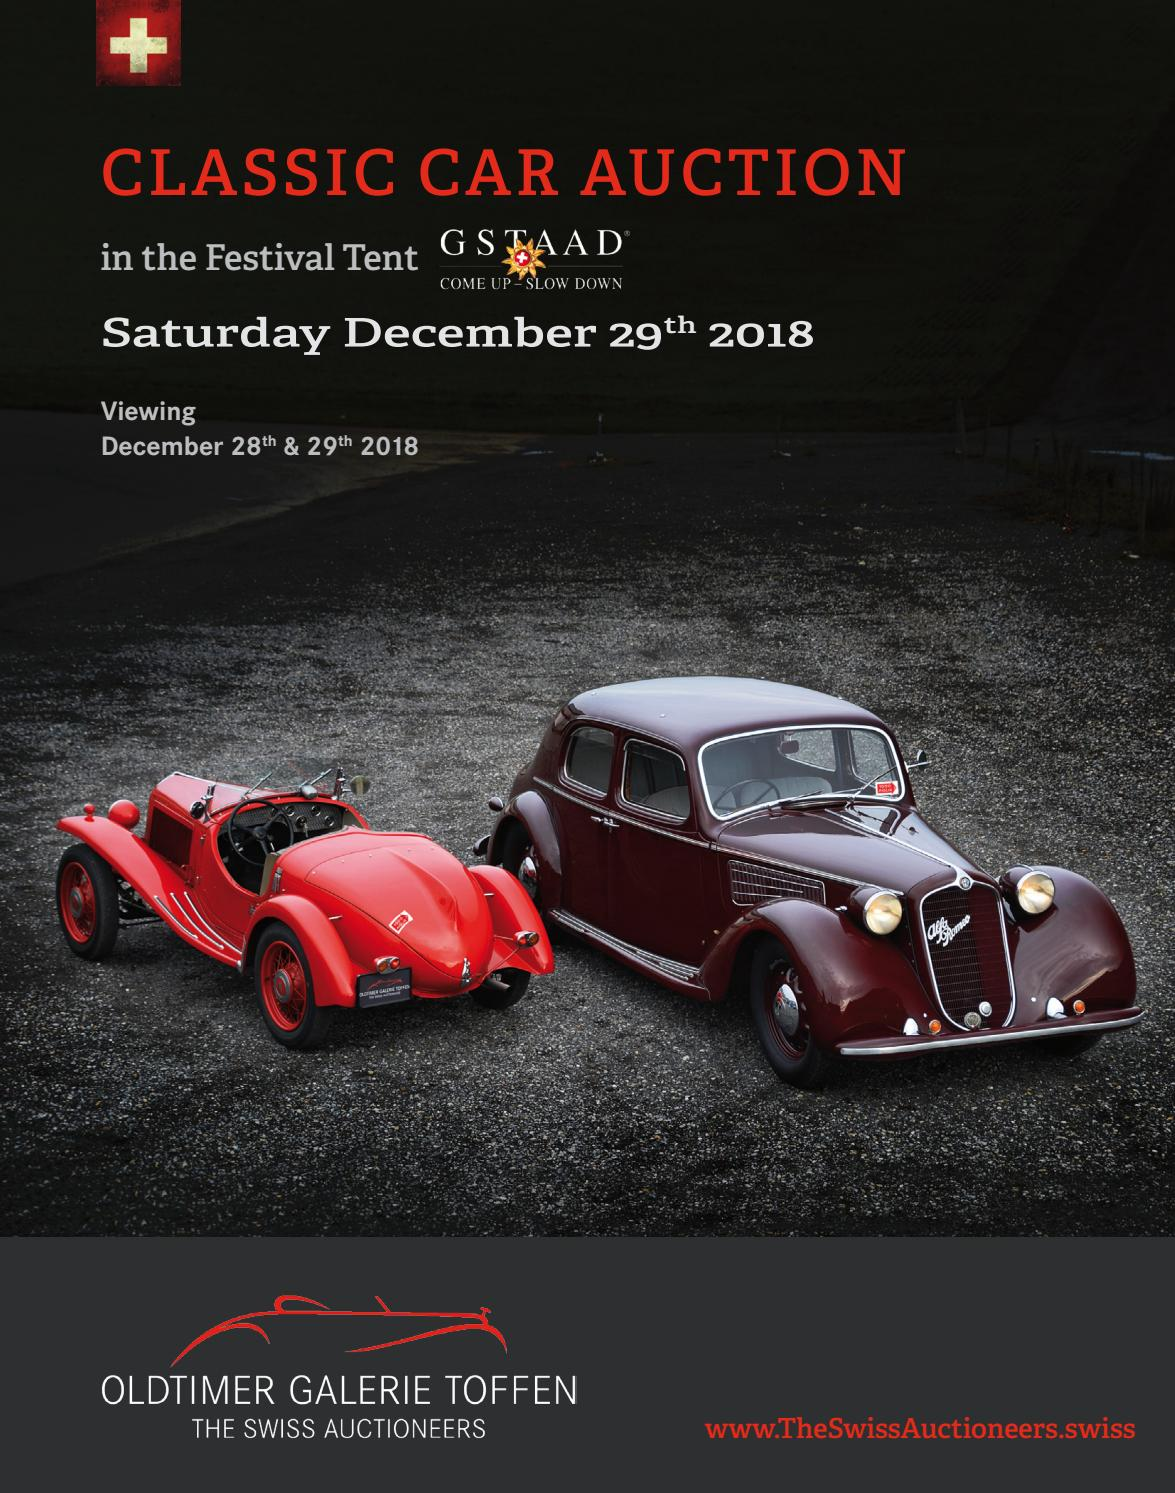 hight resolution of gstaad classic car auction december 29th 2018